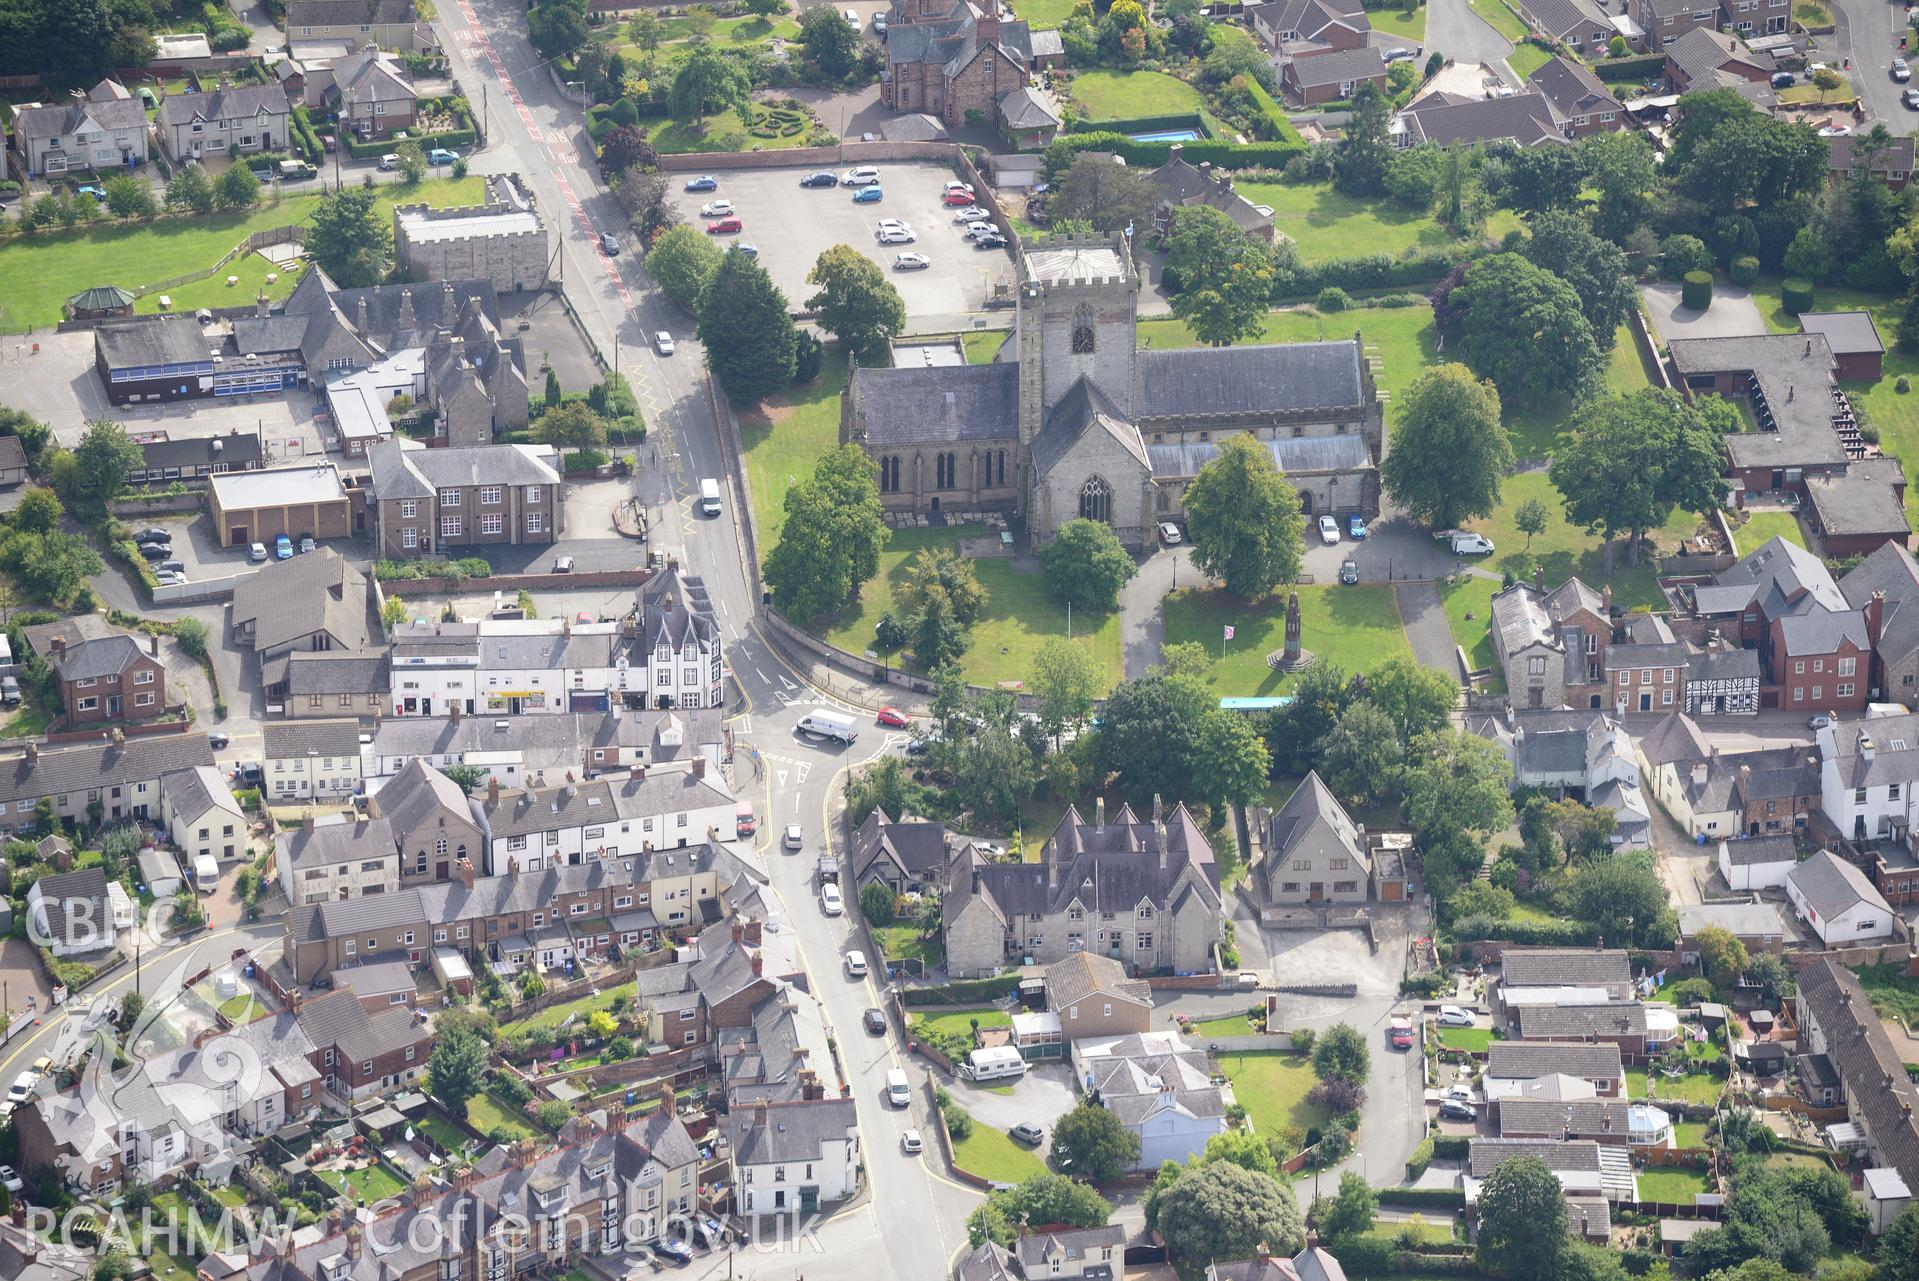 St. Asaph Cathedral and the Bishop William Morgan Memorial in the city of St. Asaph. Oblique aerial photograph taken during the Royal Commission's programme of archaeological aerial reconnaissance by Toby Driver on 11th September 2015.